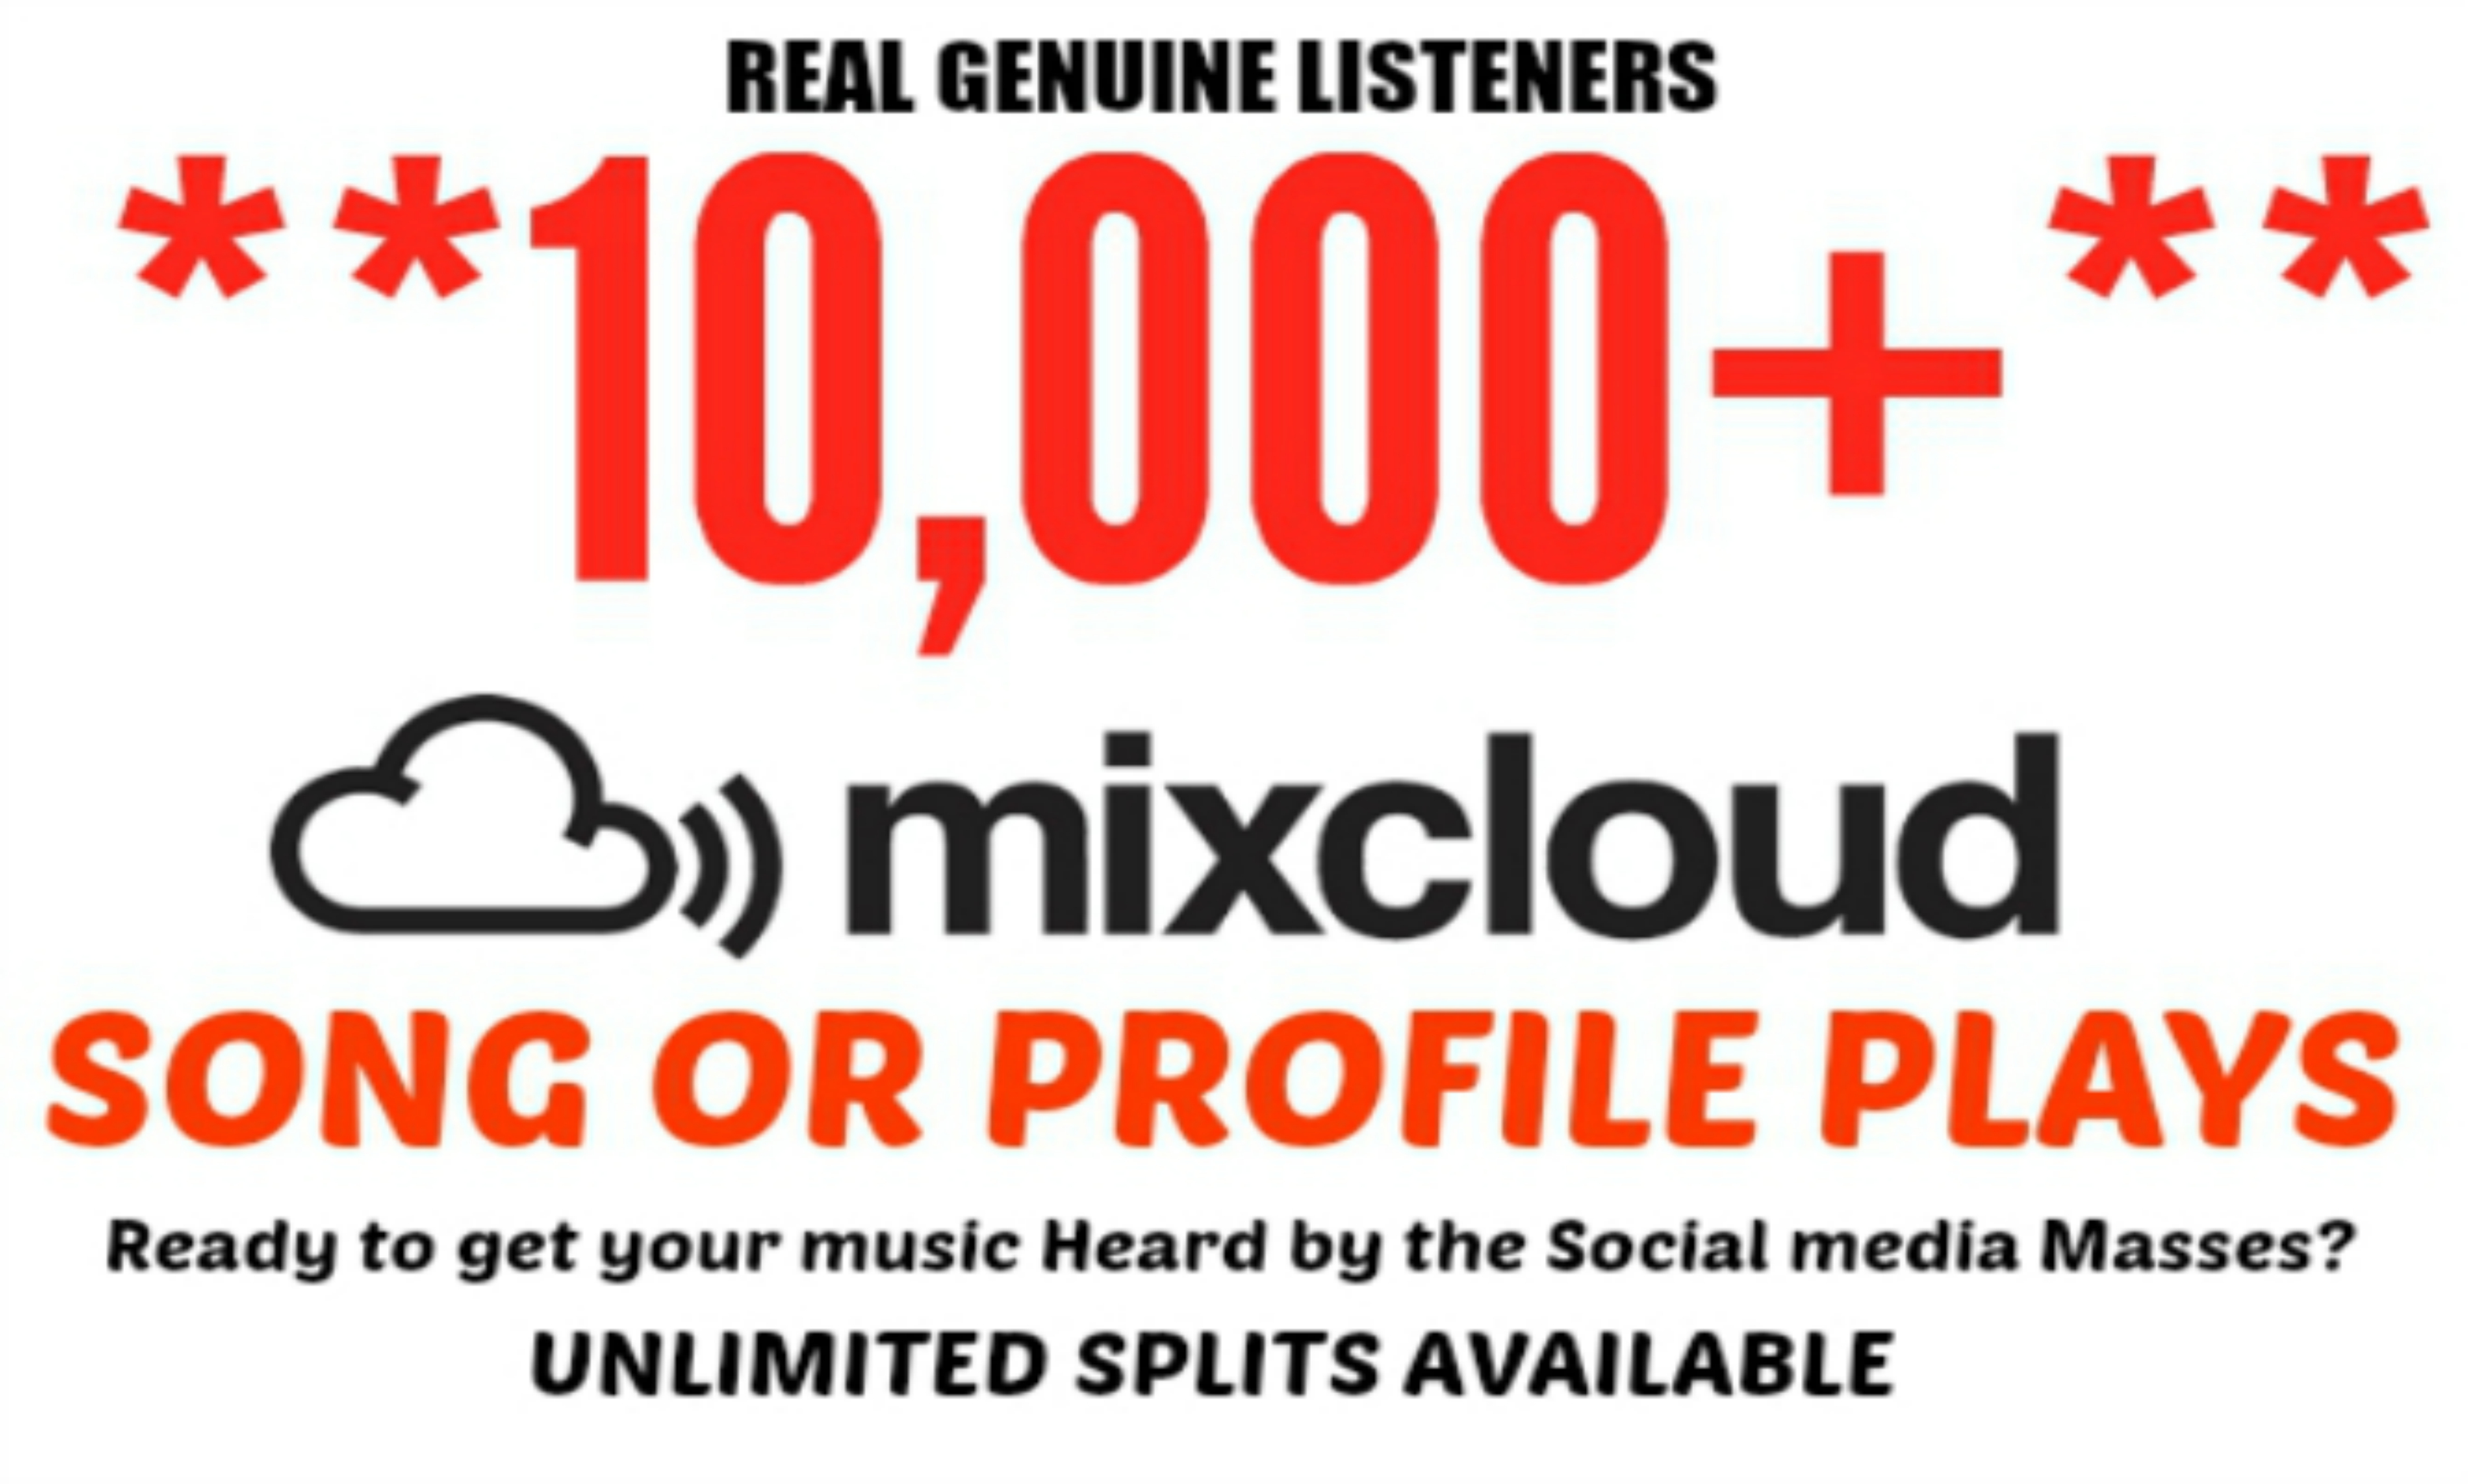 drive 10,000+ Mixcloud Plays To Song or Profile